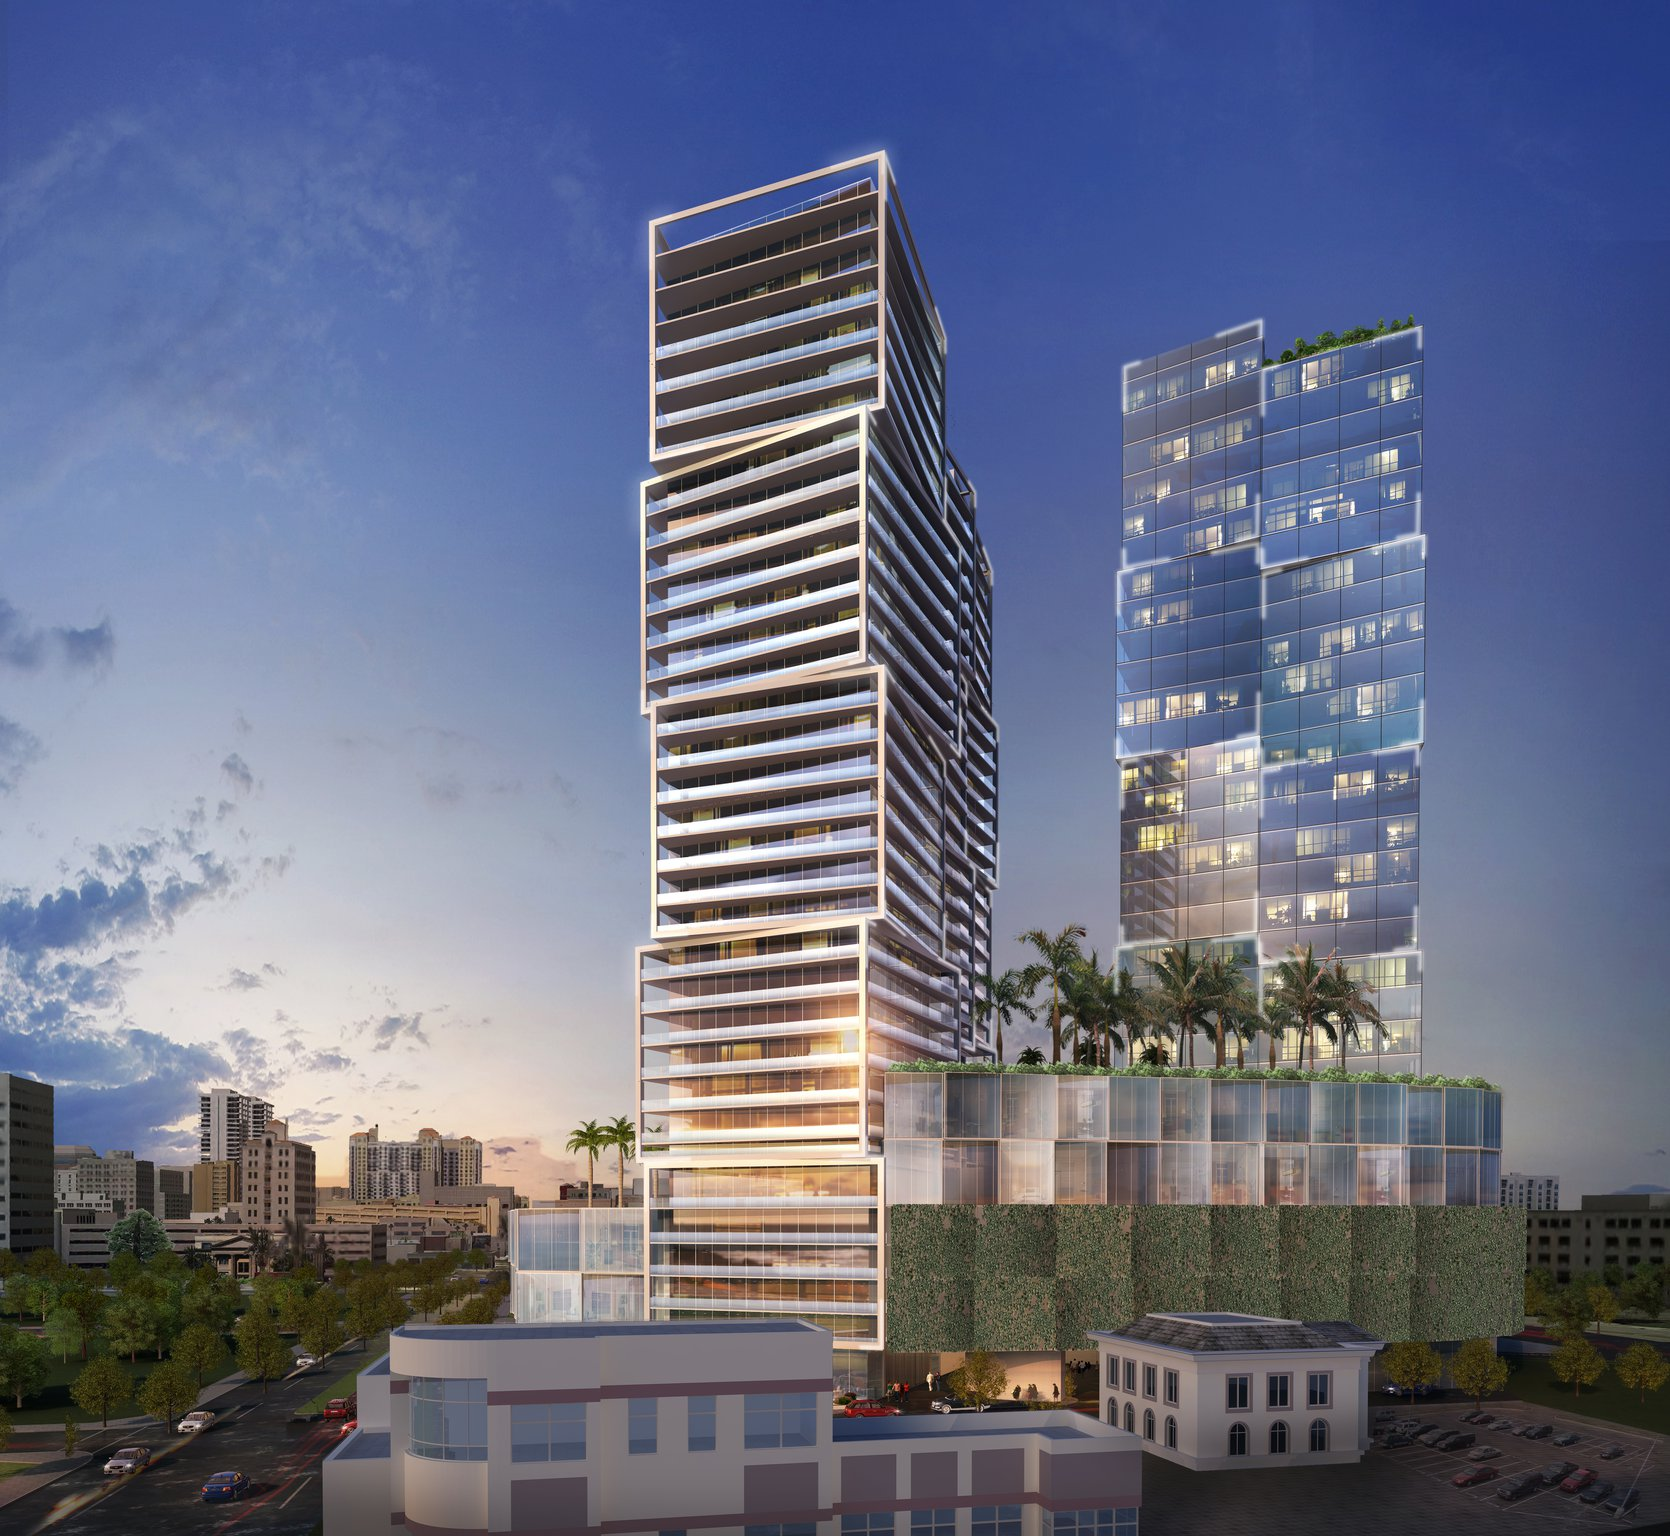 One West Palm - West Palm Beach's newest Luxury Hi-Rise Towers. Unique Cubed Glass Architecture, Designed by World Renowned firm, Arquitectonica. Completion date 2020.